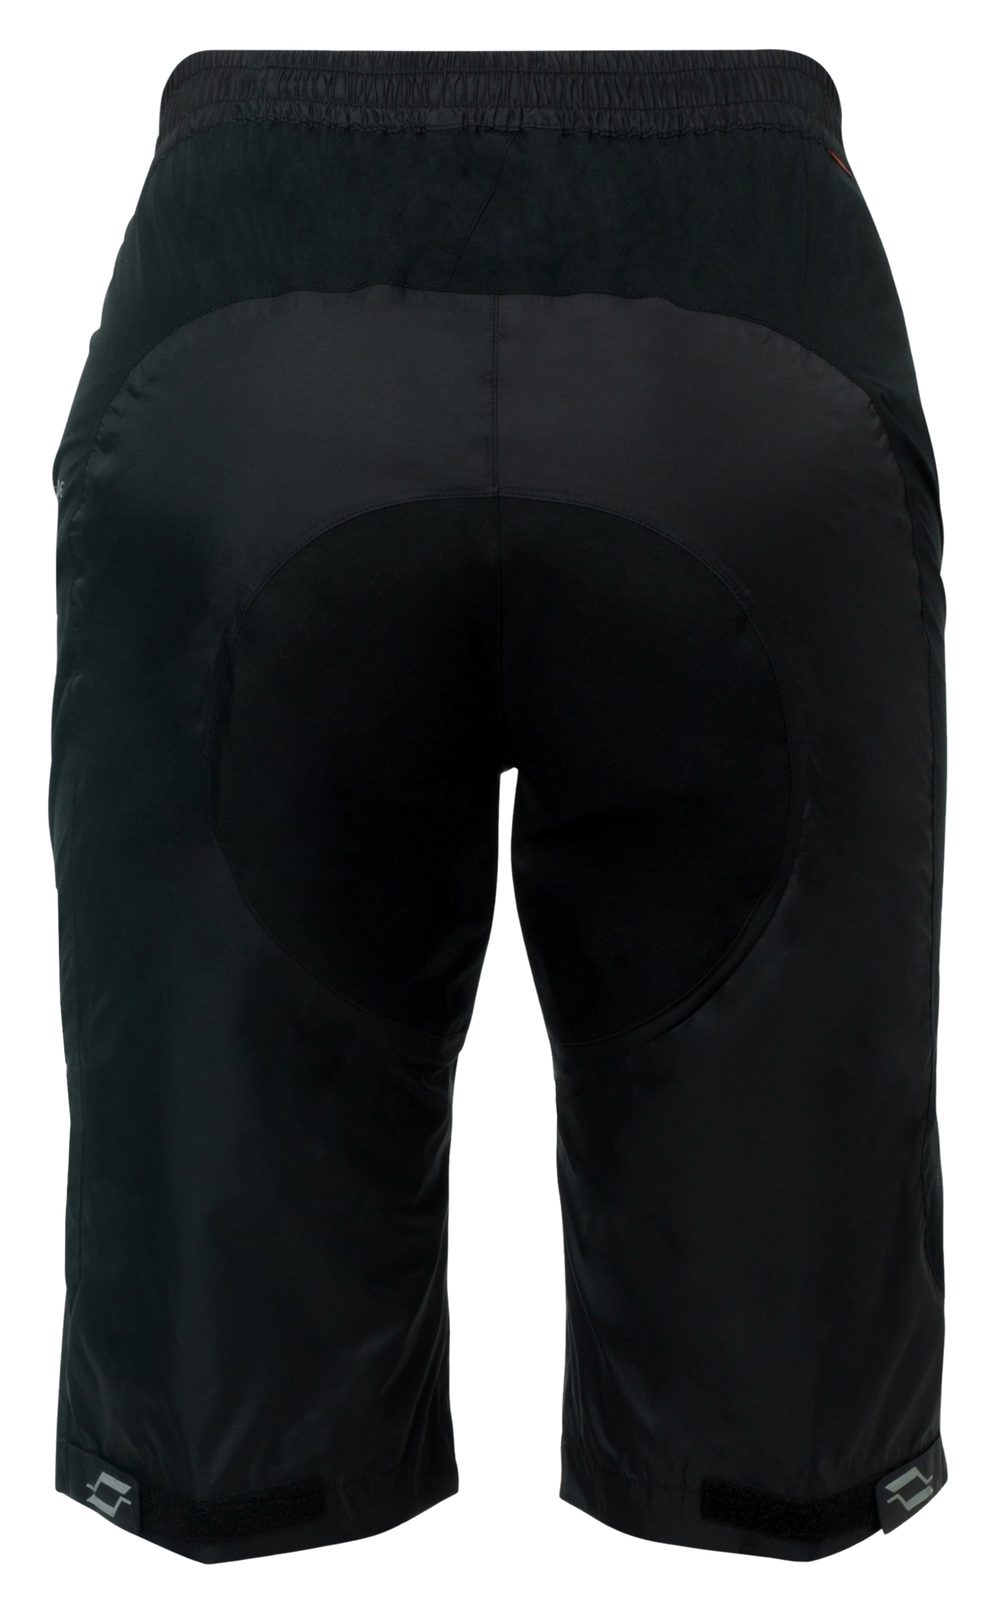 VAUDE Women´s Spray Shorts II black Größe 38 - schneider-sports